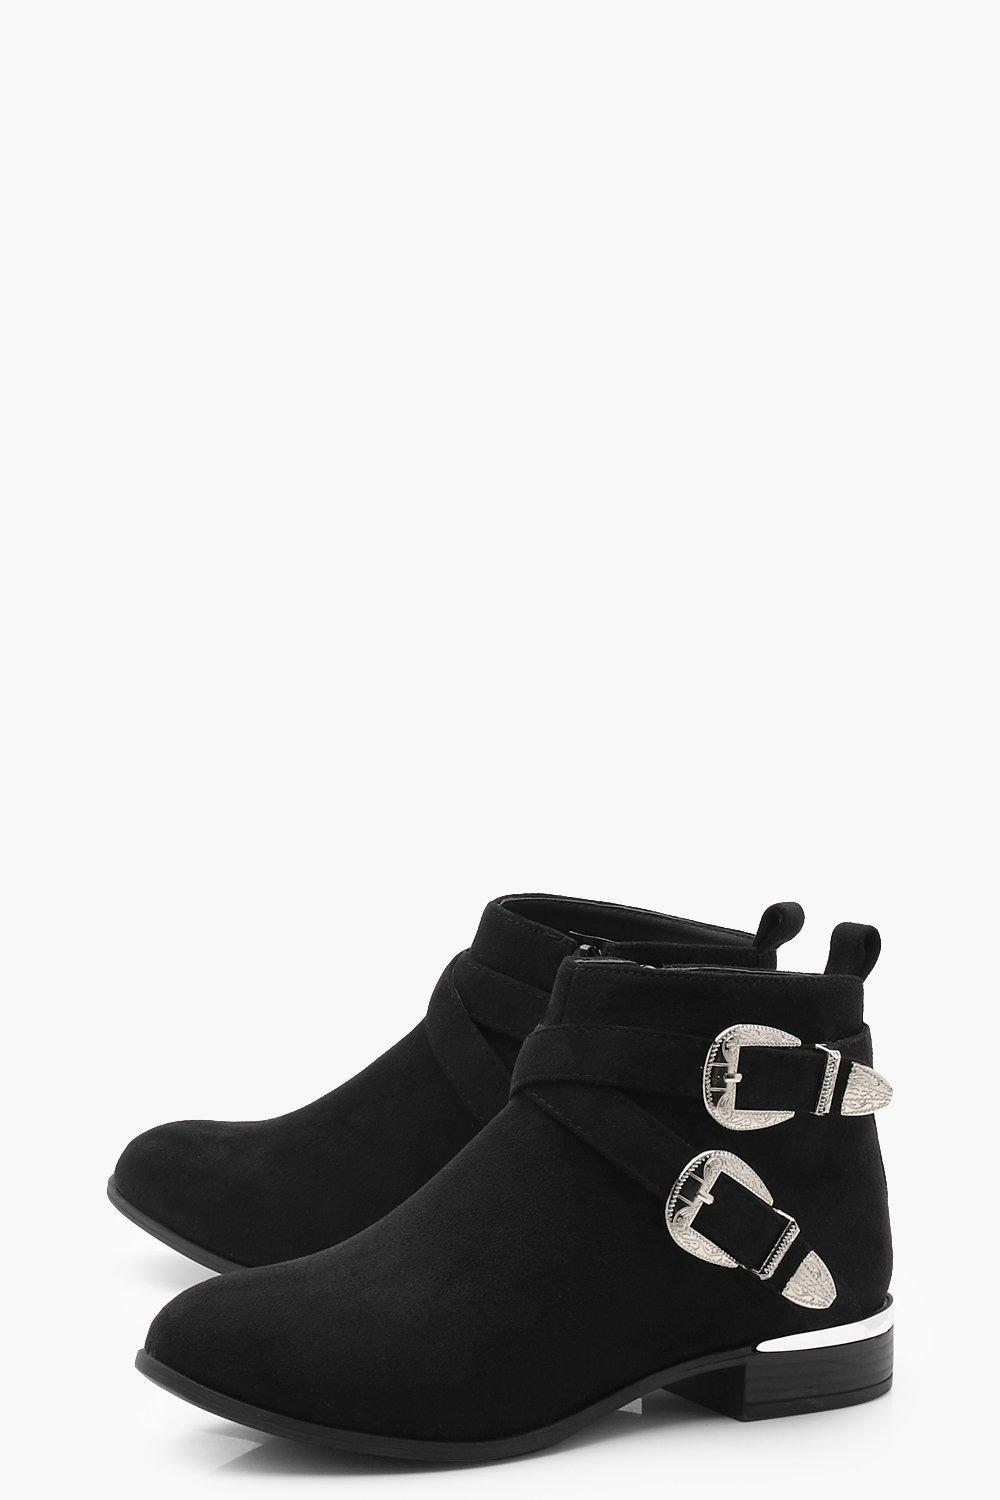 Boohoo Buckle Strap Chelsea Boots in Black